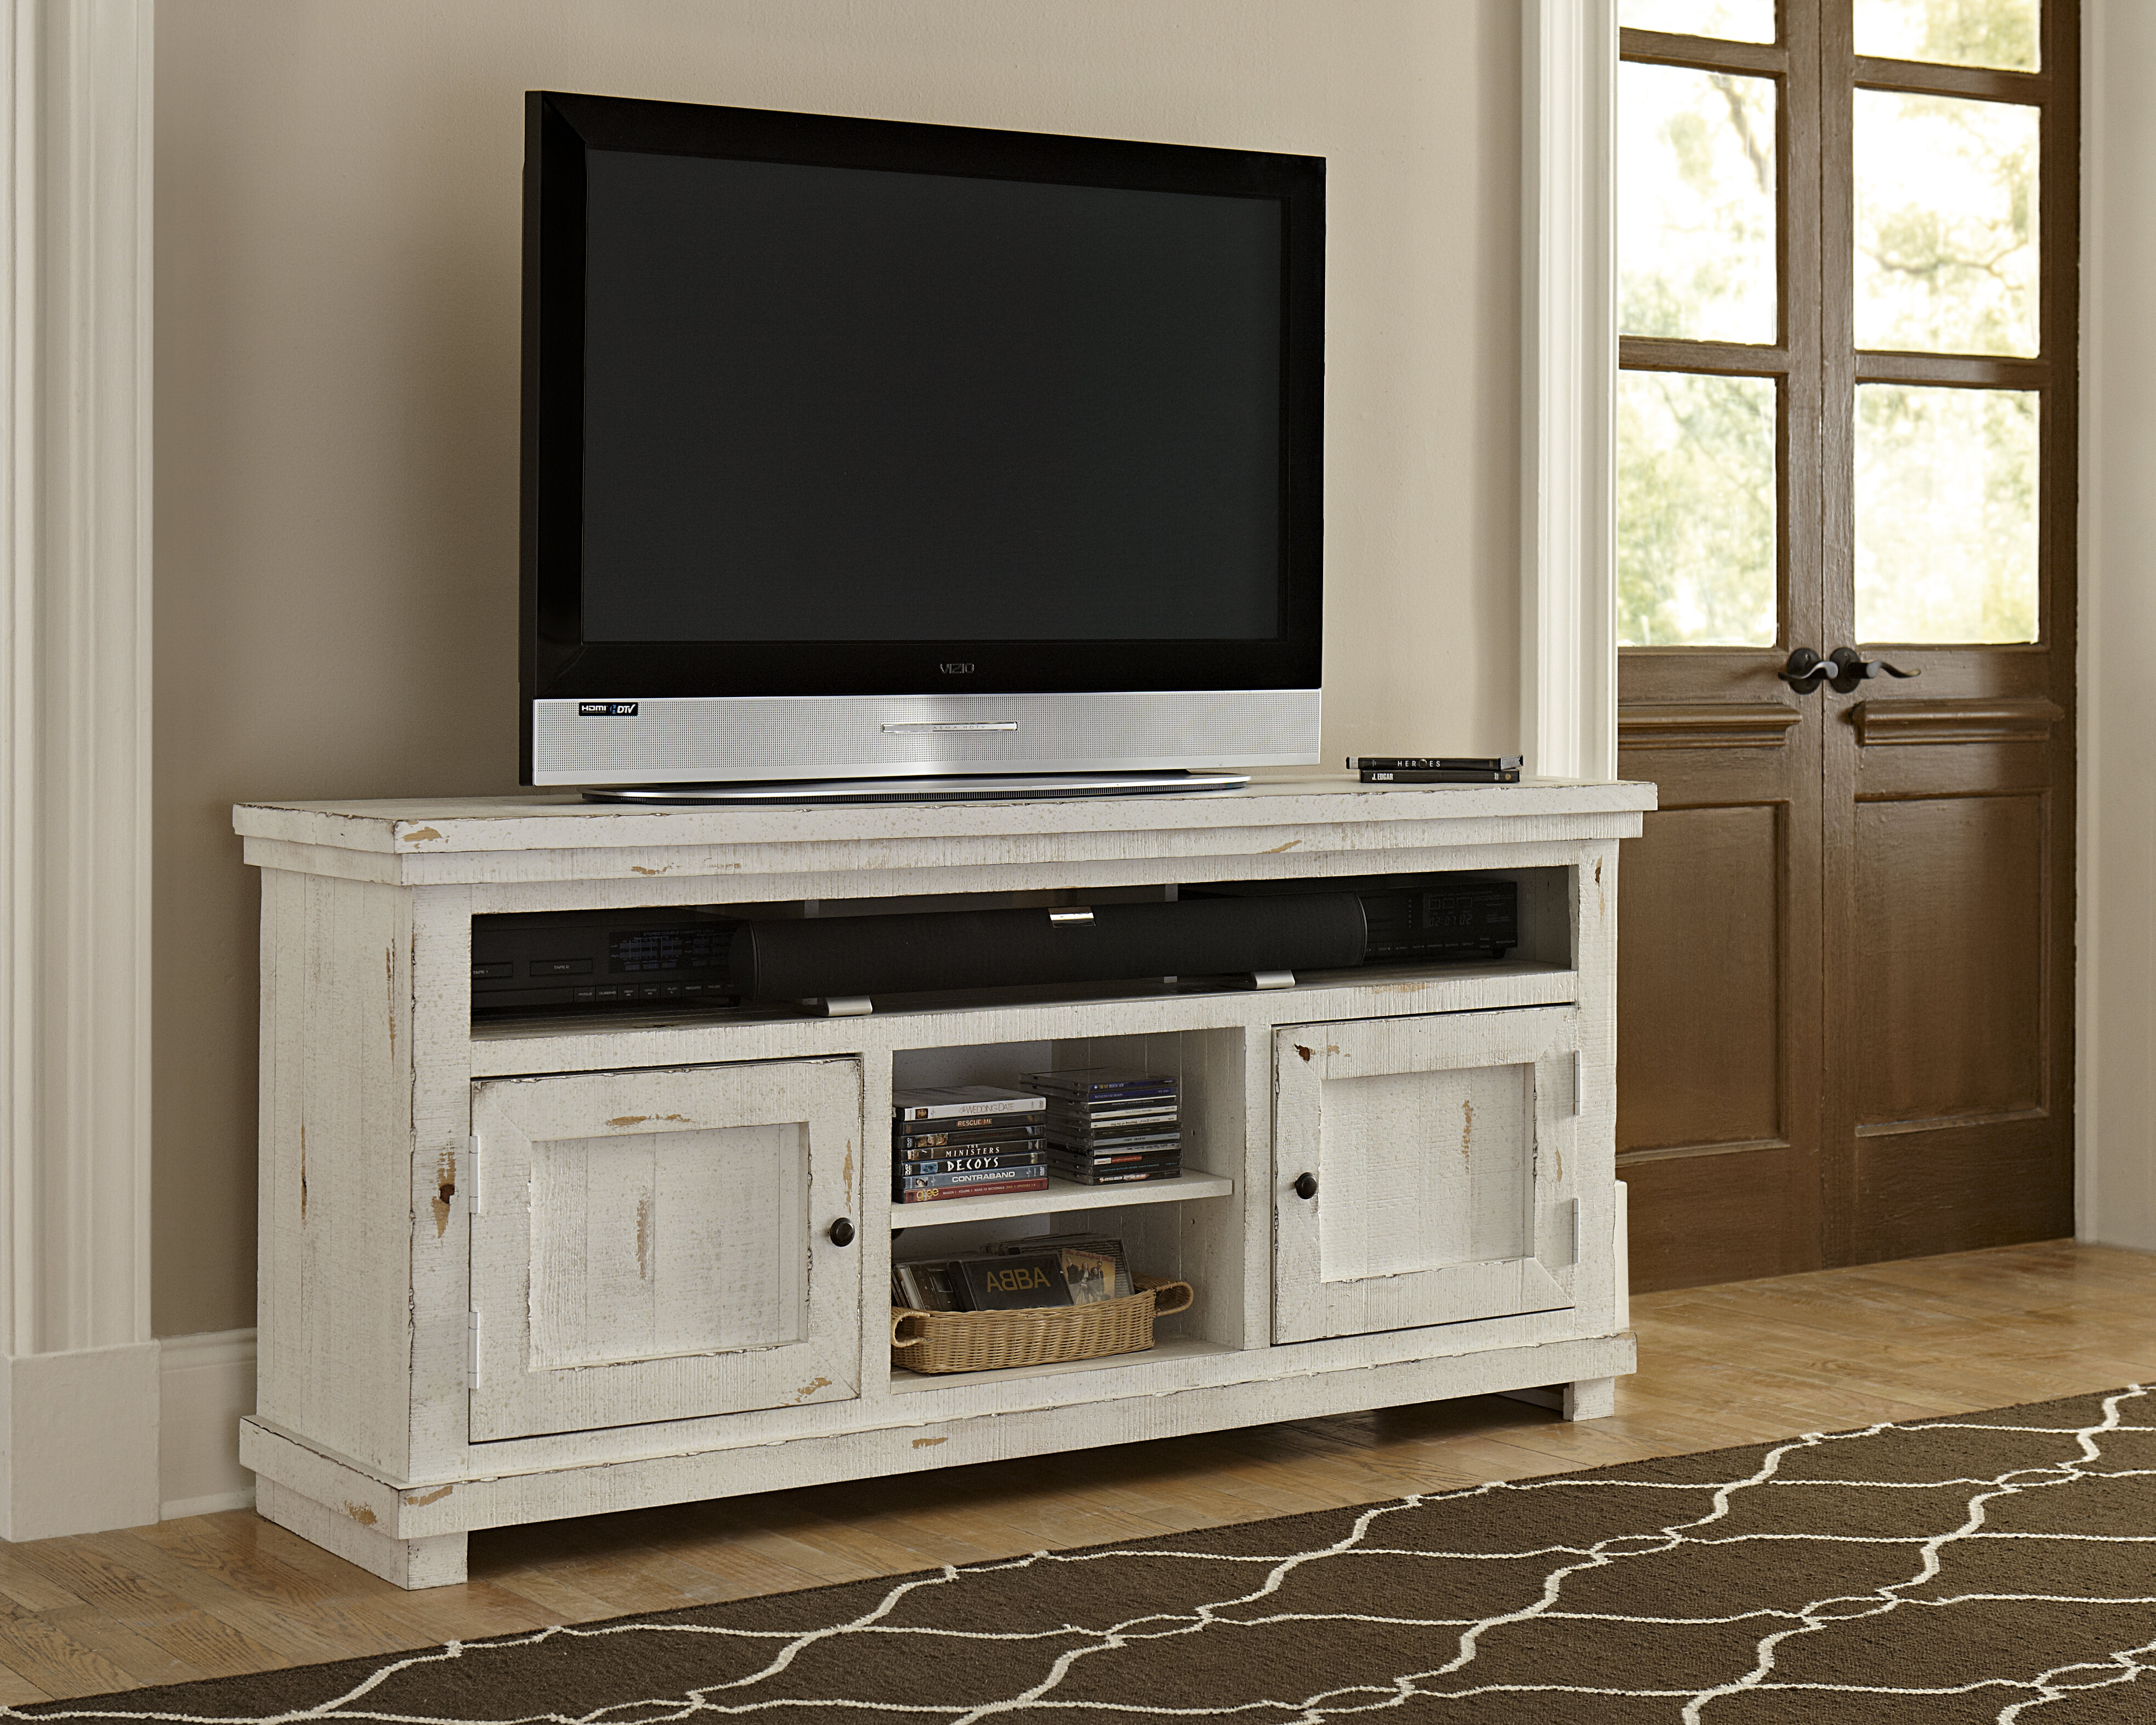 Pineland TV Stand for TVs up to 70 inches